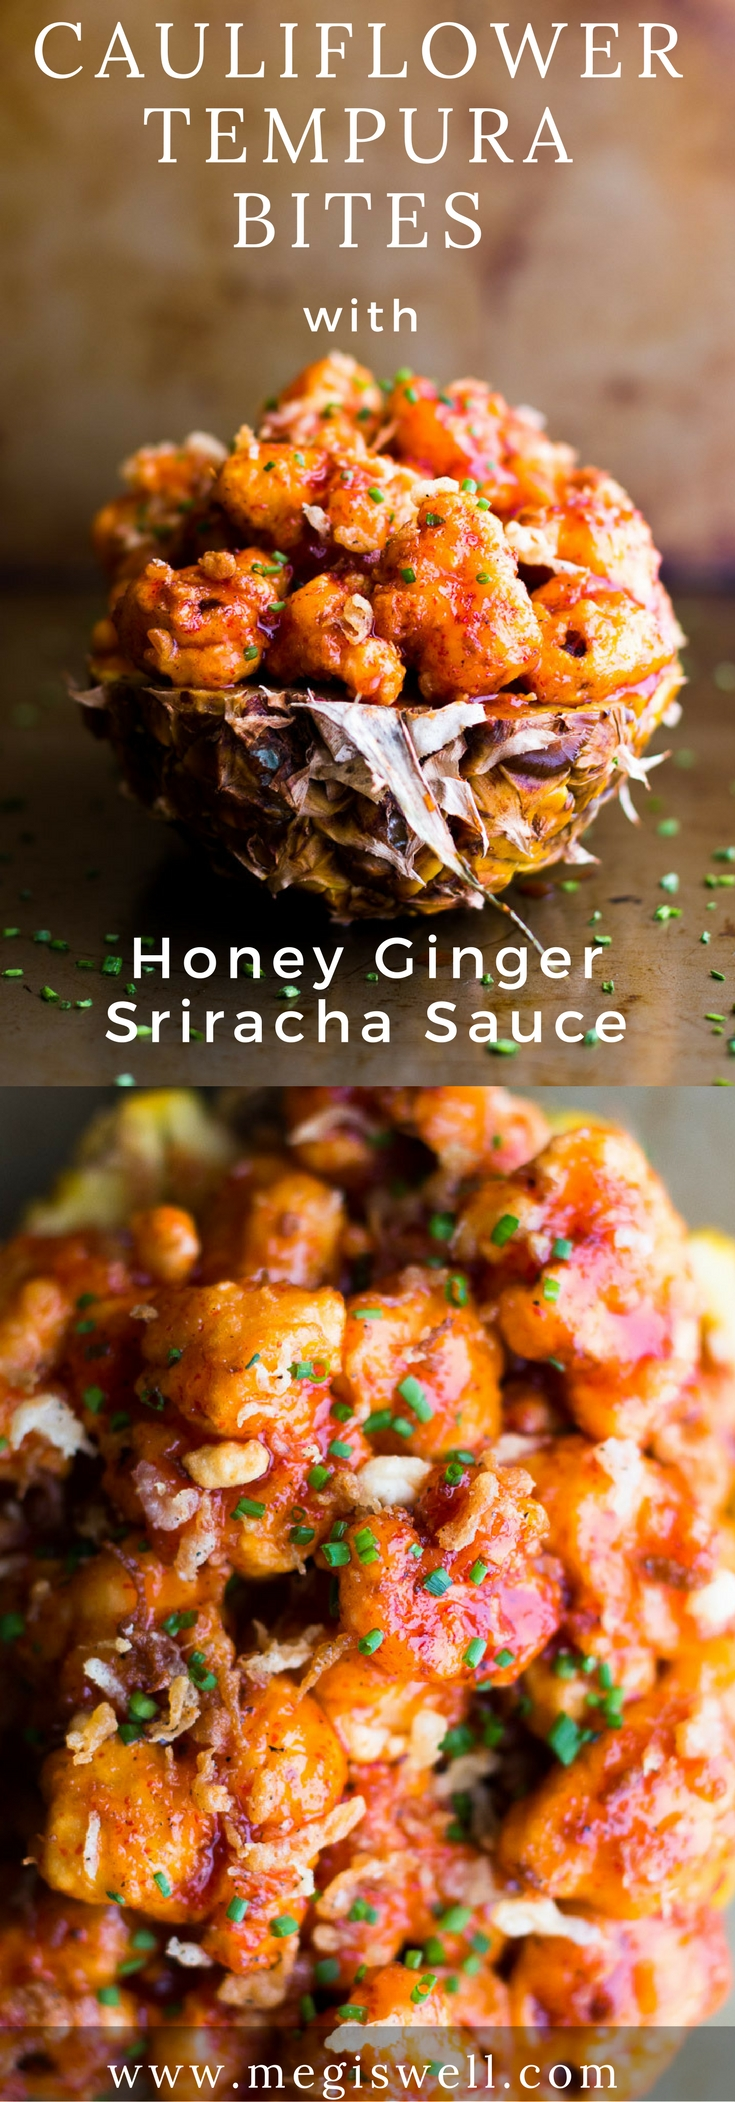 Cauliflower Tempura Bites are fried till golden brown and tossed with an addicting spicy Honey Ginger Sriracha Sauce. Perfect as a party appetizer, side dish, or meal! | Sponsored by House of Tsang | www.megiswell.com